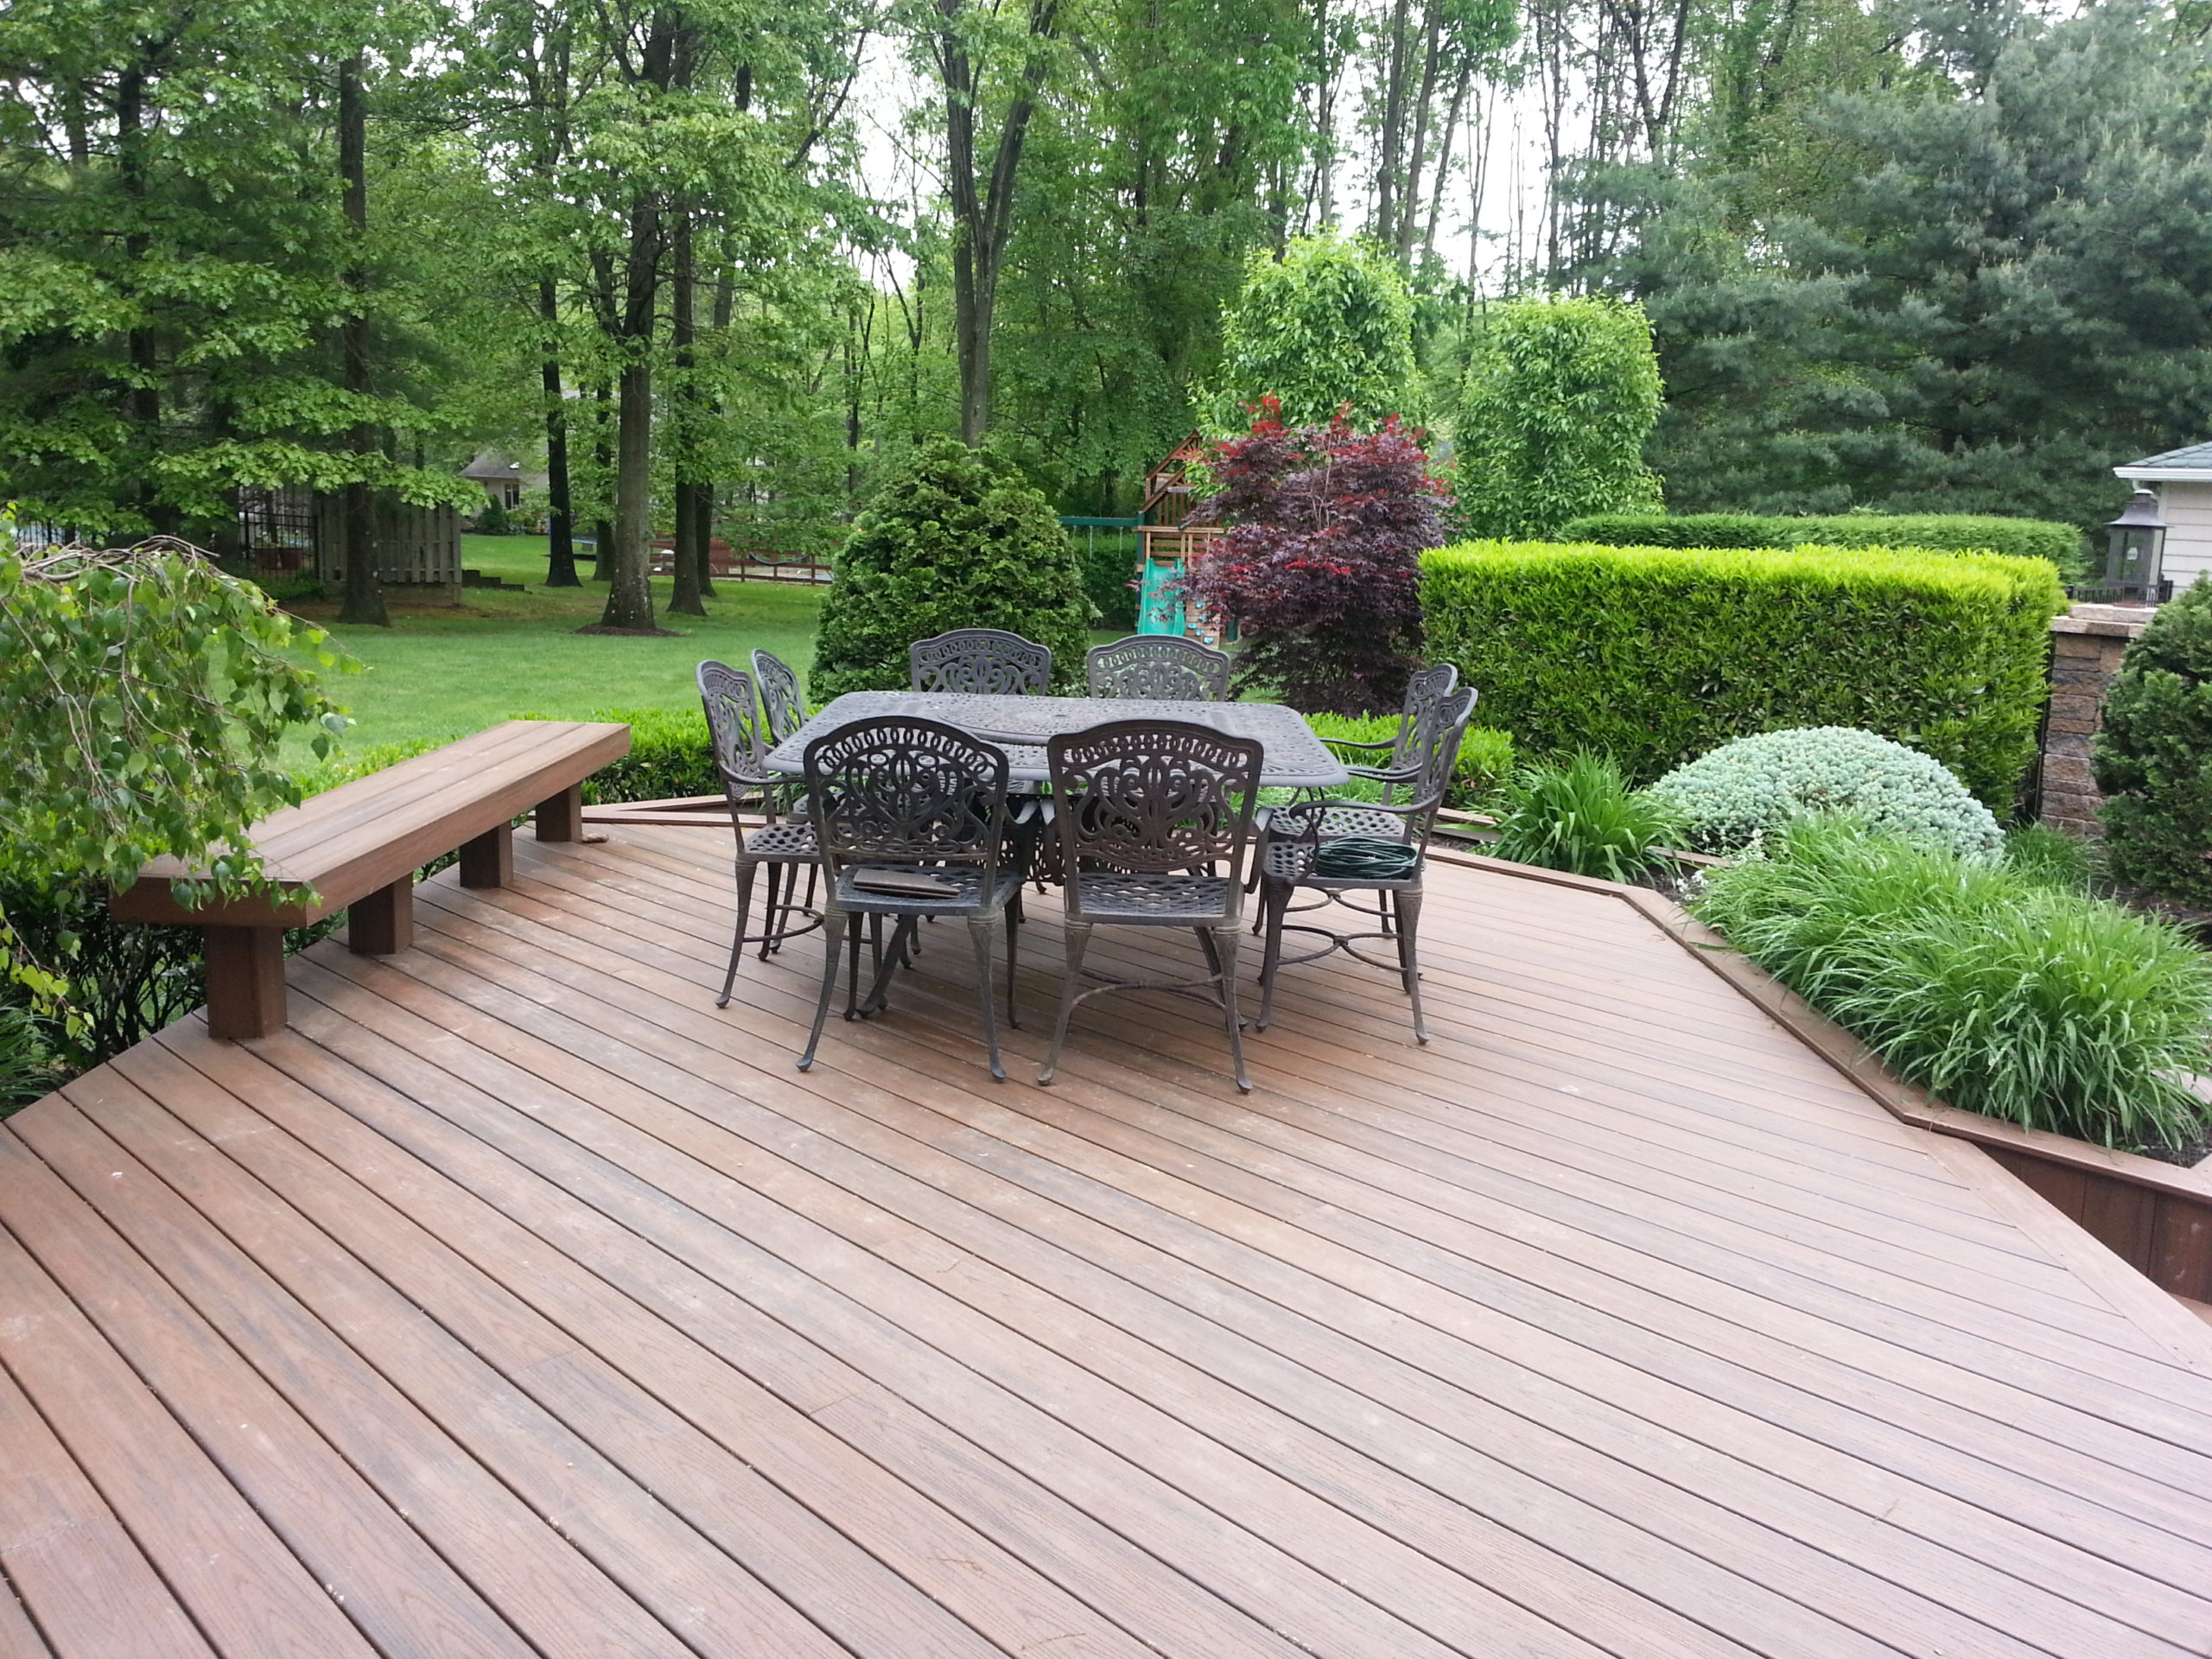 Deck, bench and planters, all composite